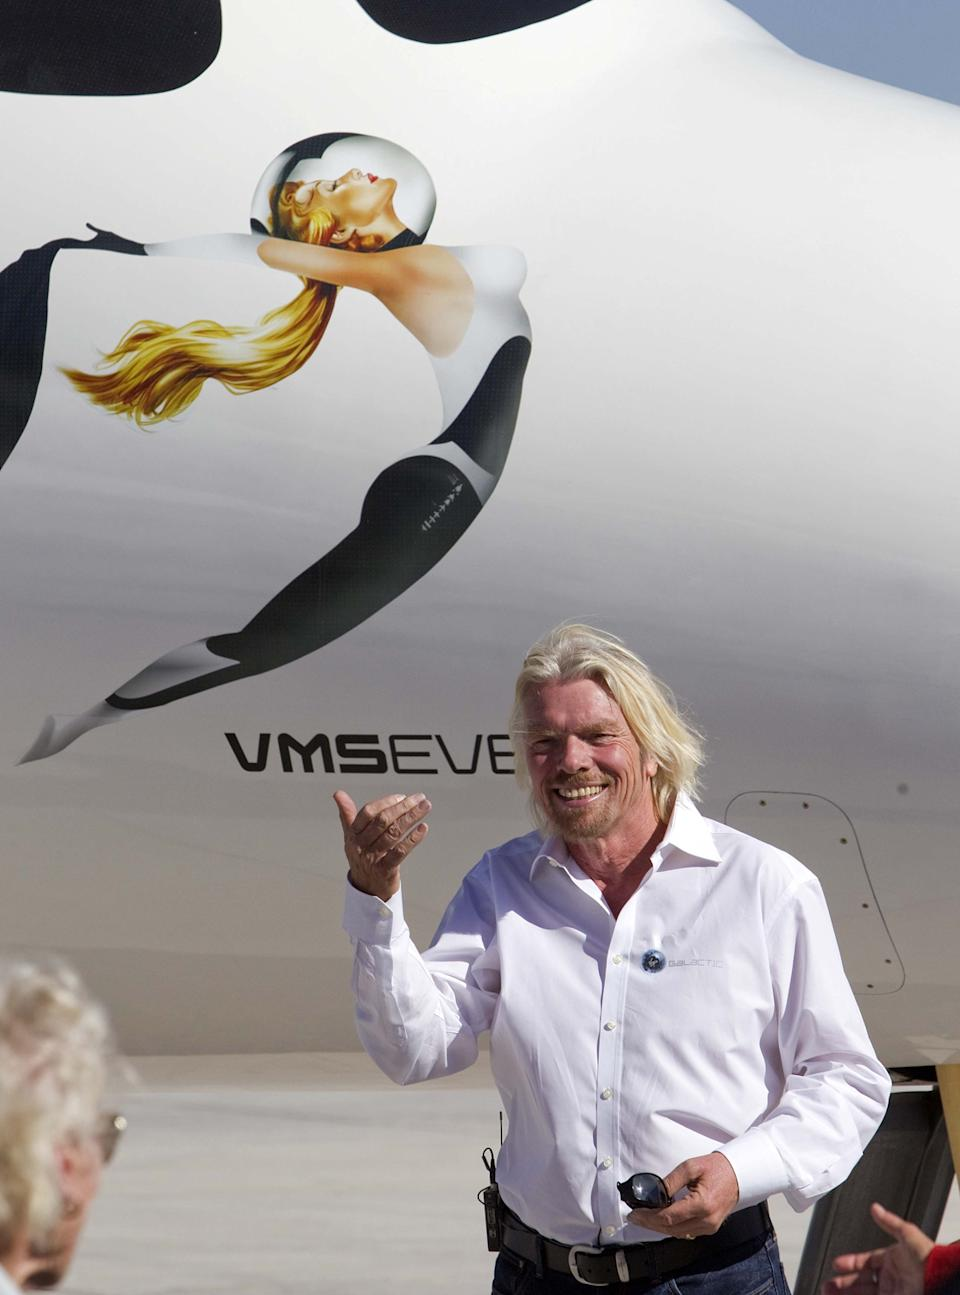 British billionaire Sir Richard Branson stands along side the spacecraft White Knight Two after a test flight outside the new Spaceport America hangar.